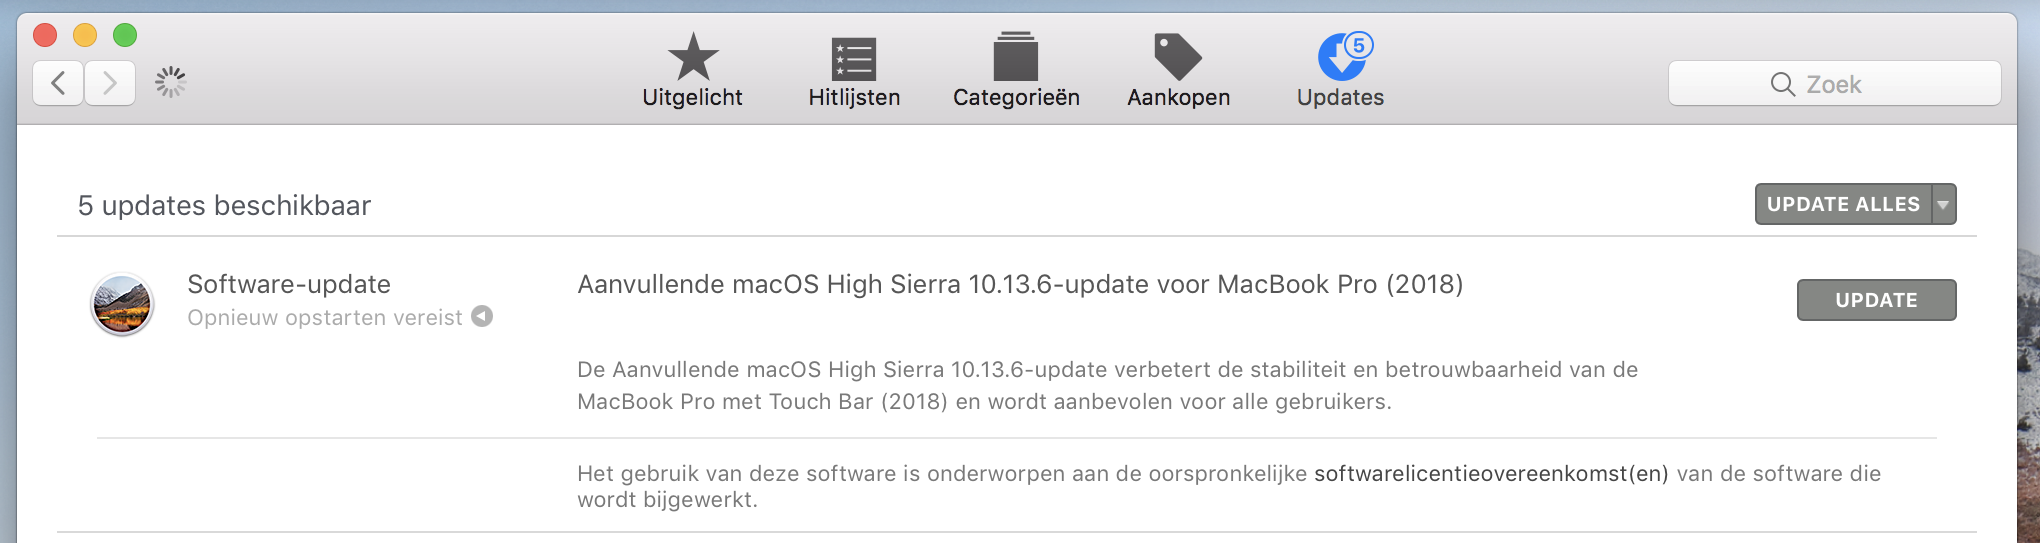 MacBook Pro 2018 software-update